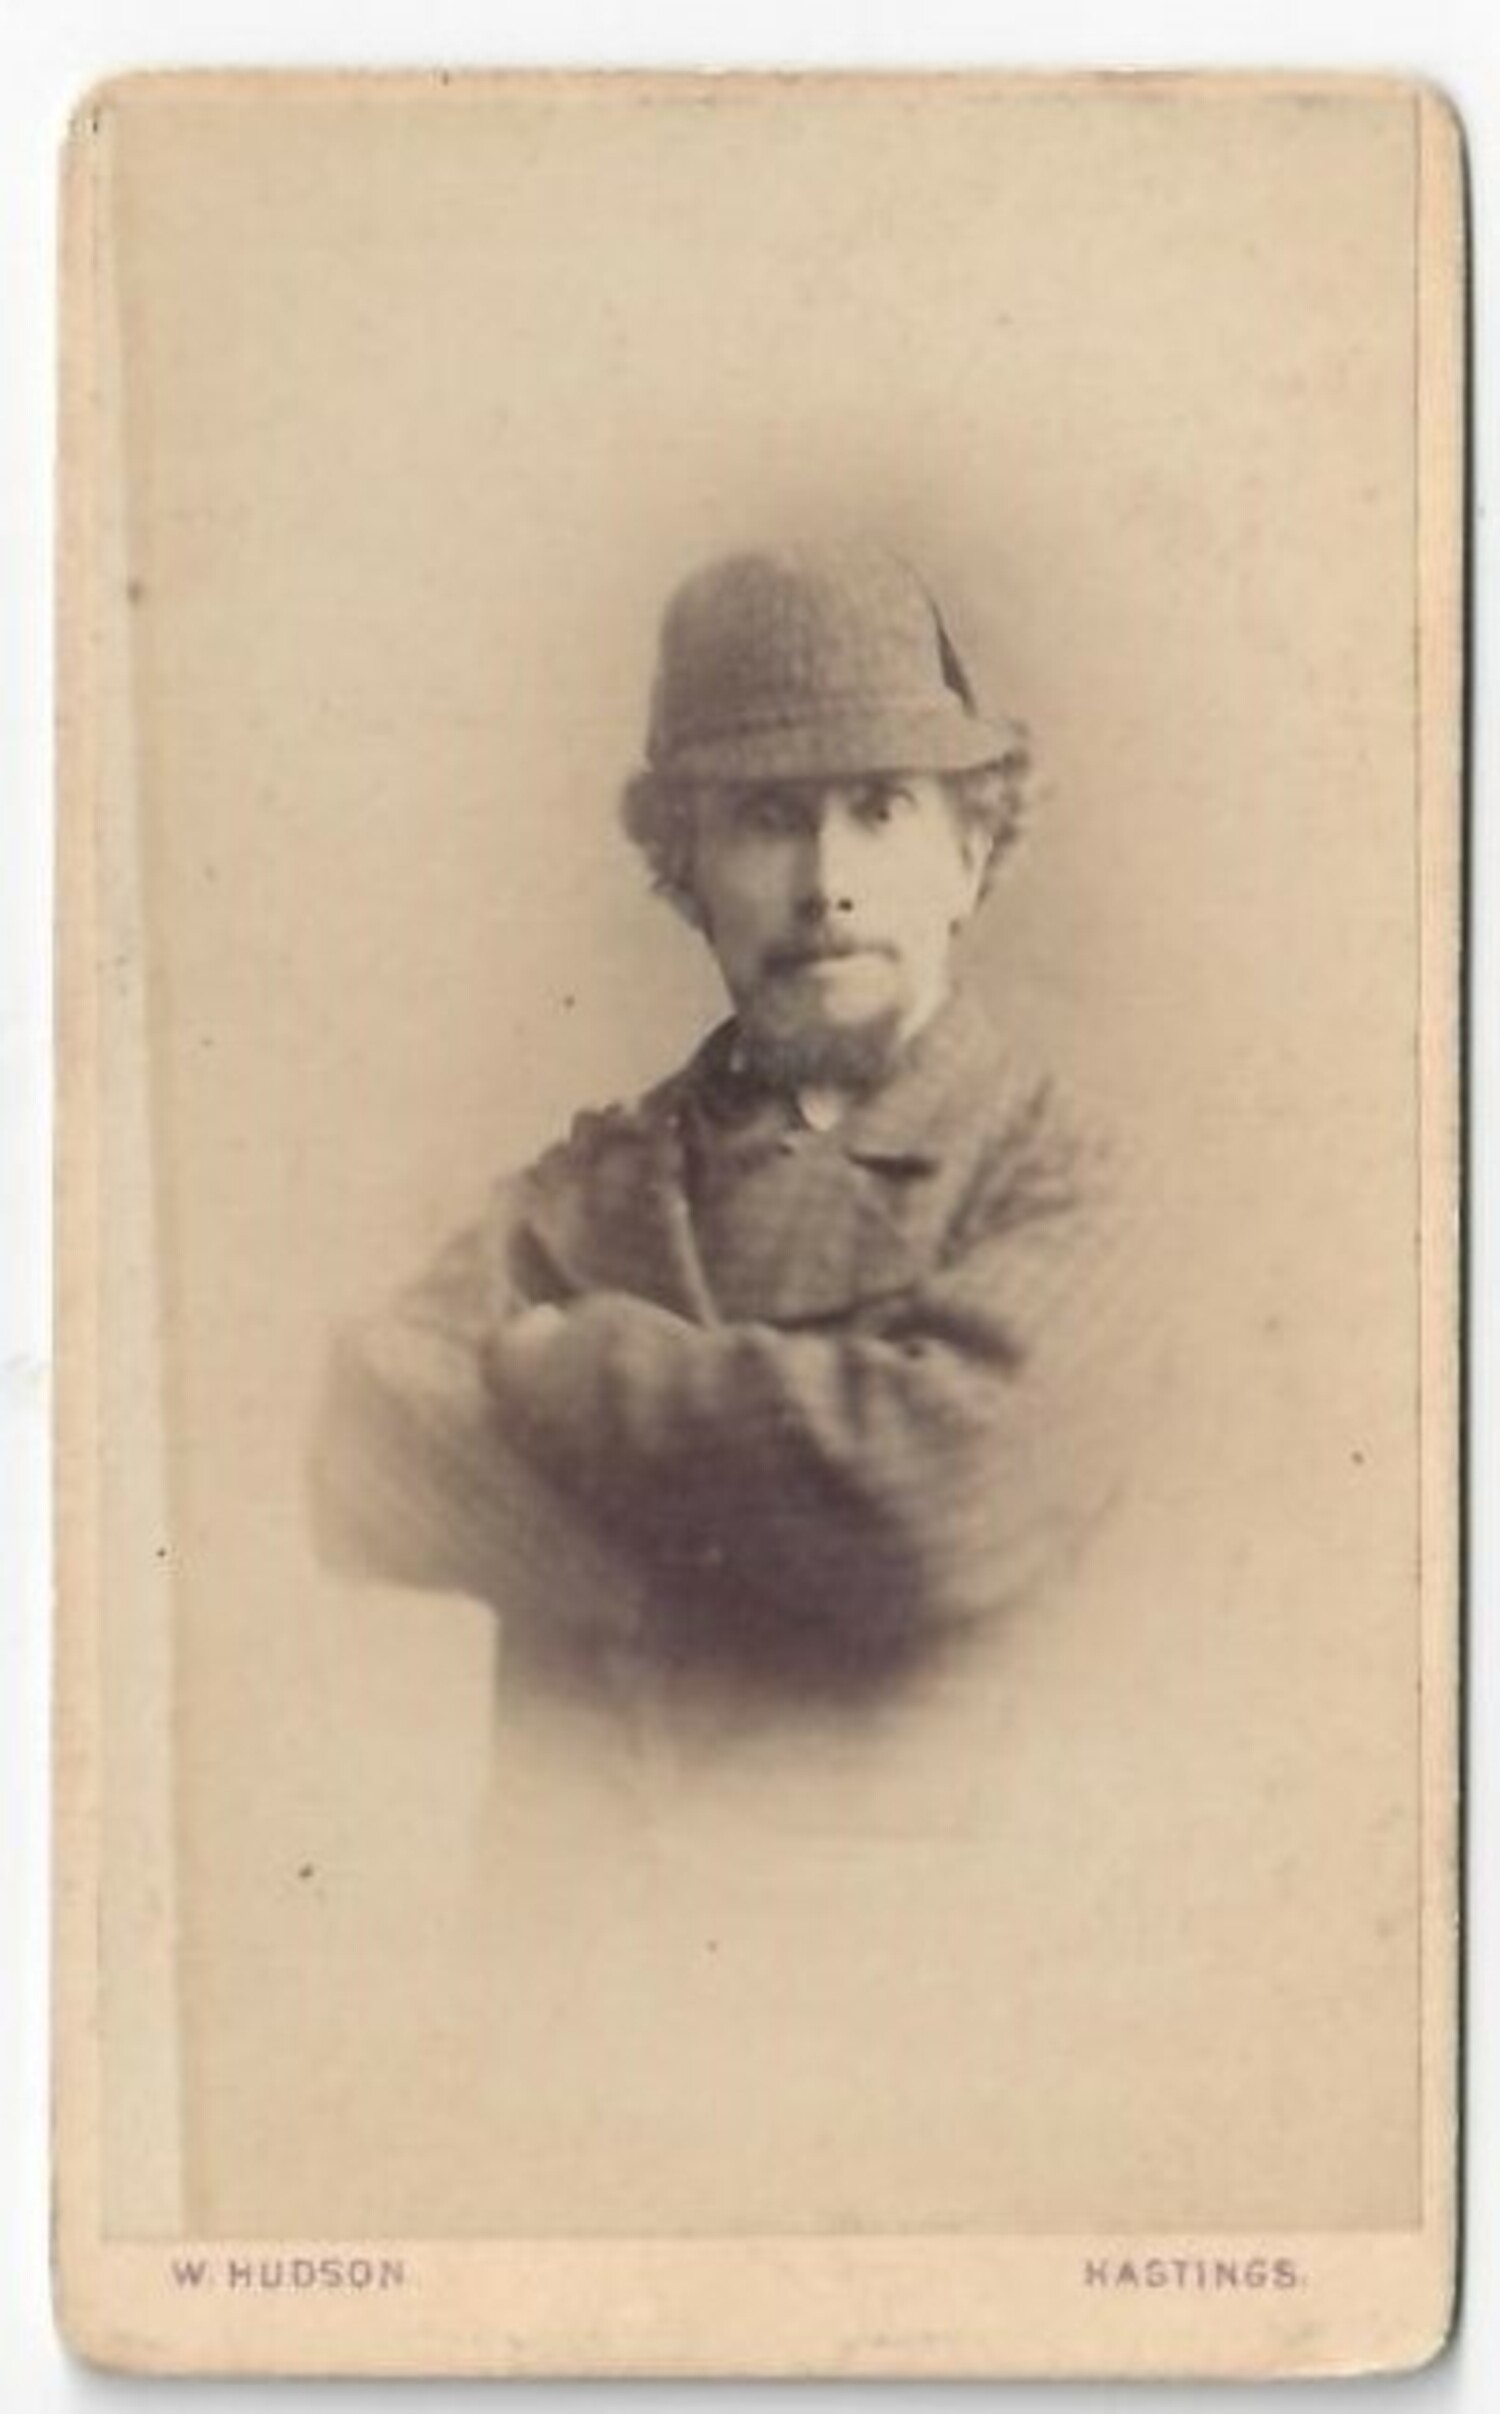 Man with a hat of the deer-stalker type, made popular by Sherlock Holmes. Britain, late 19th century (TRC 2020.3034).